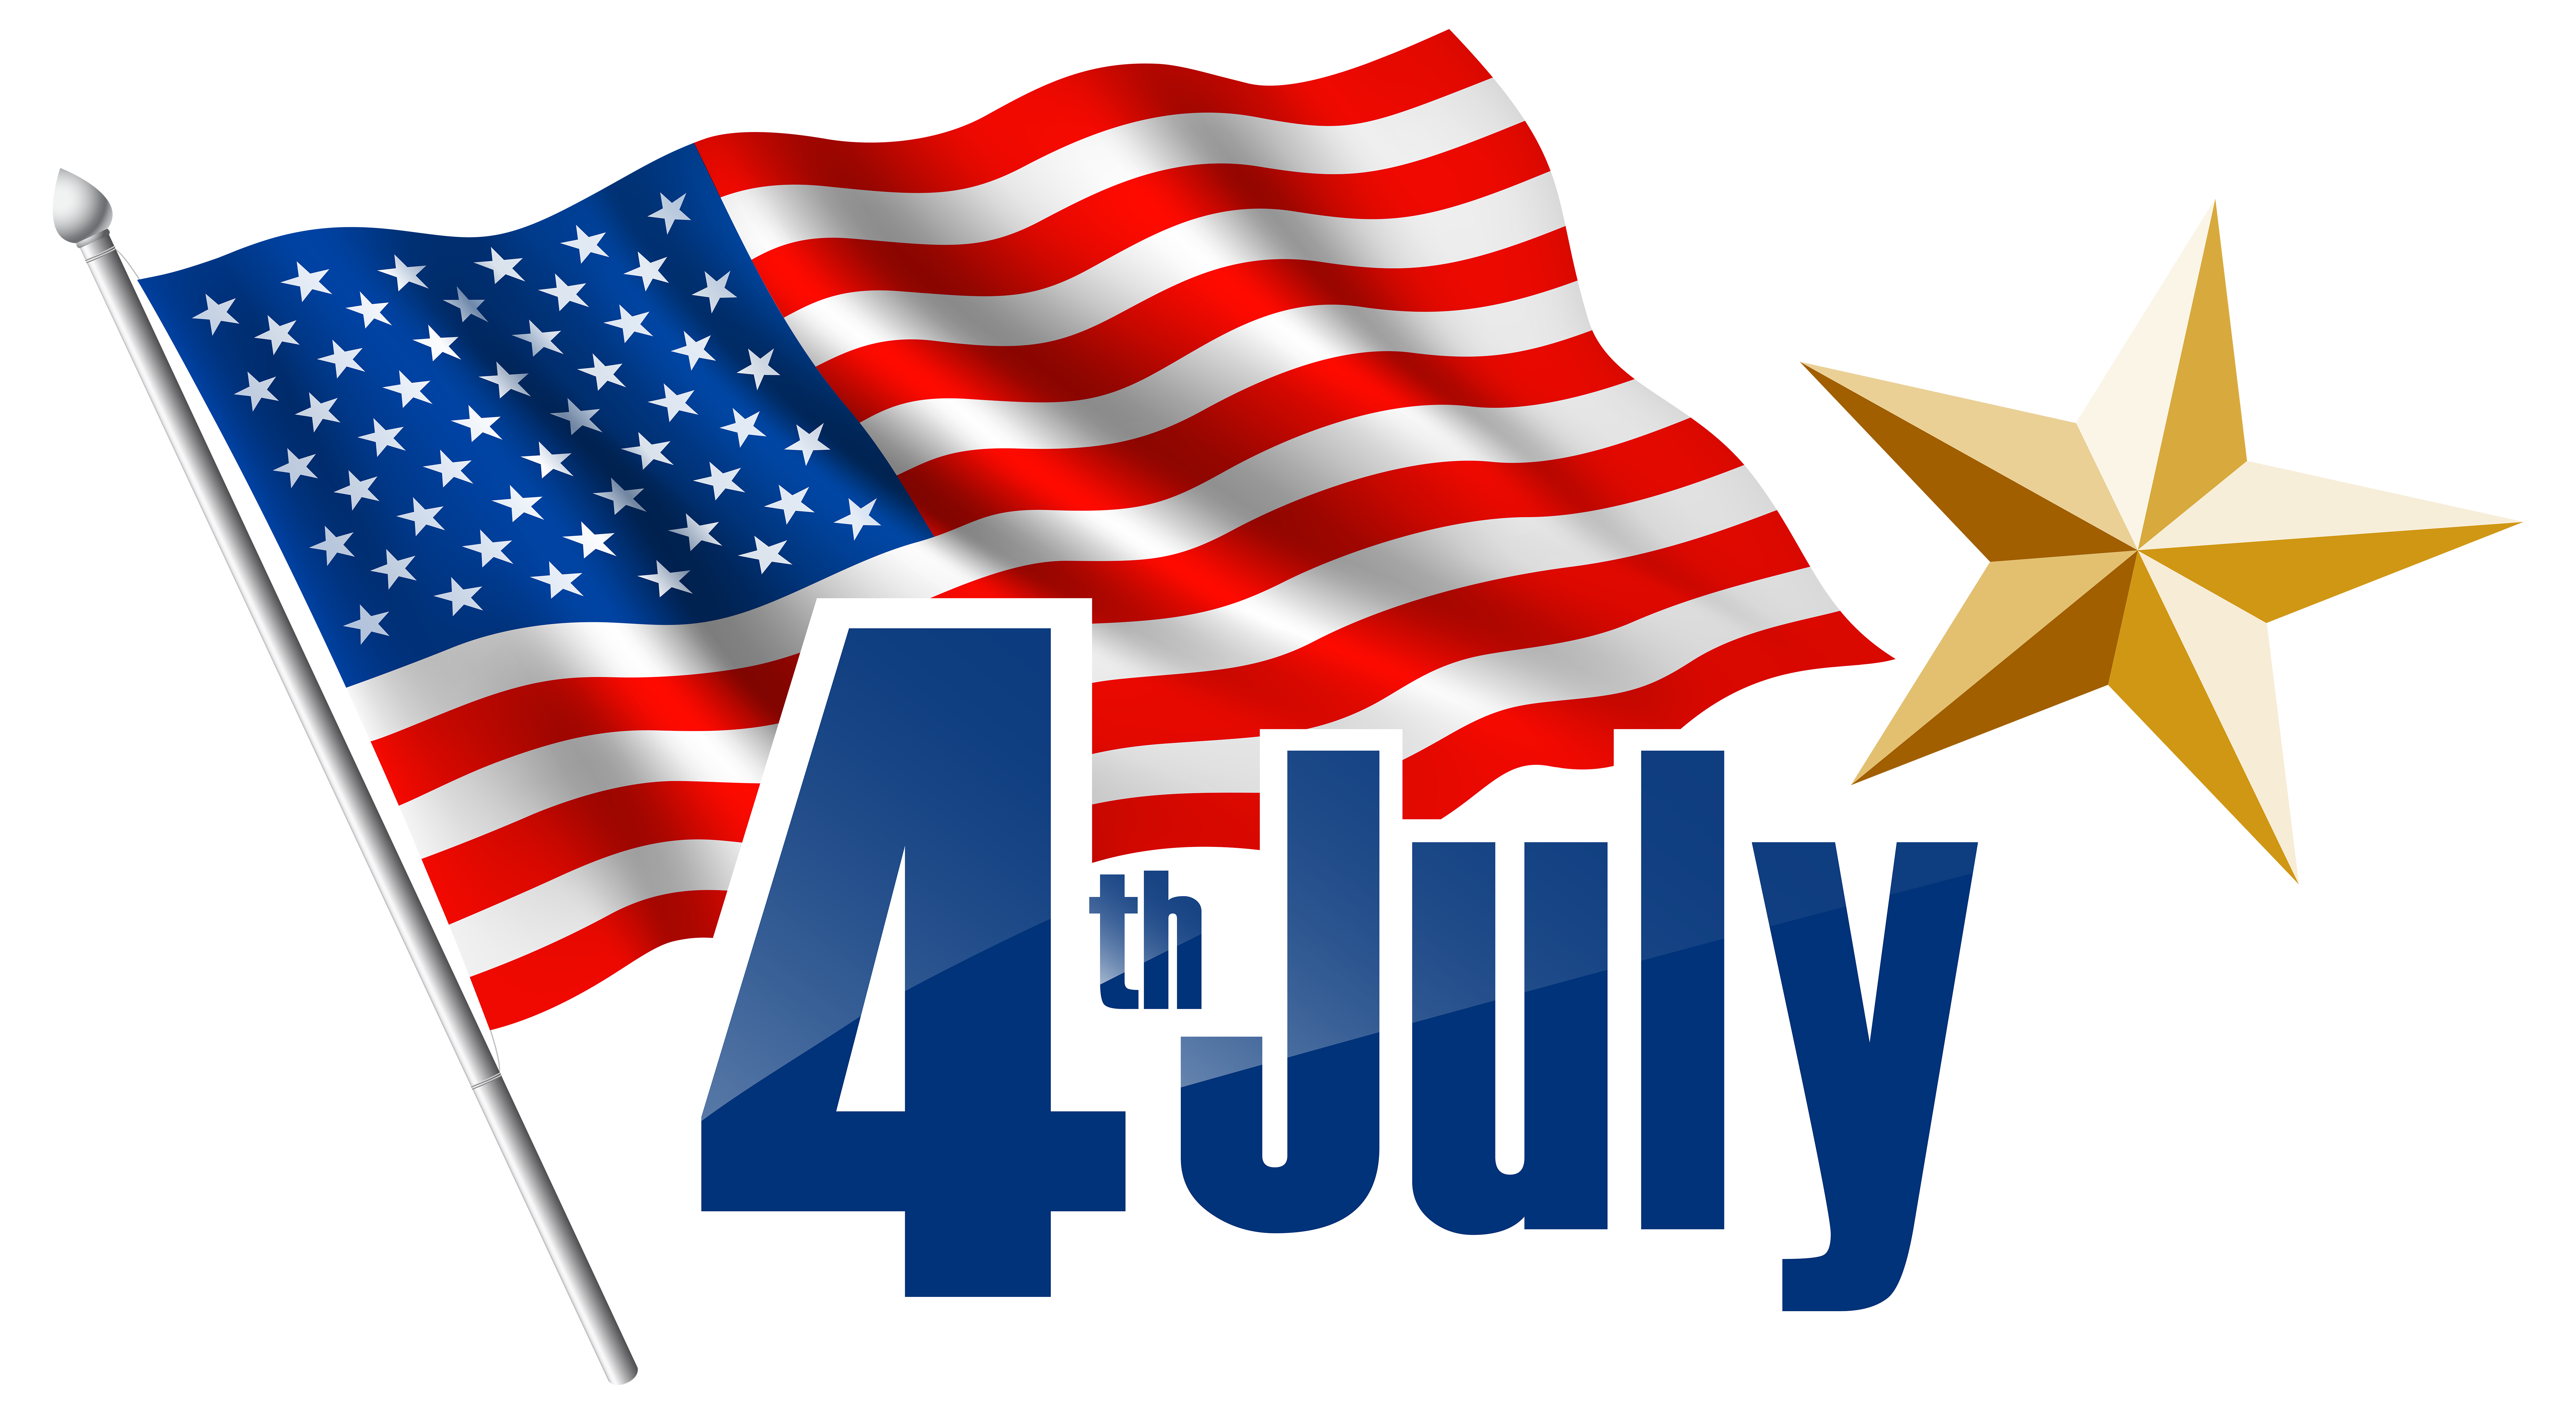 free 4th of july clipart at getdrawings com free for personal use rh getdrawings com july 4 clip art free images july 4 fireworks clipart